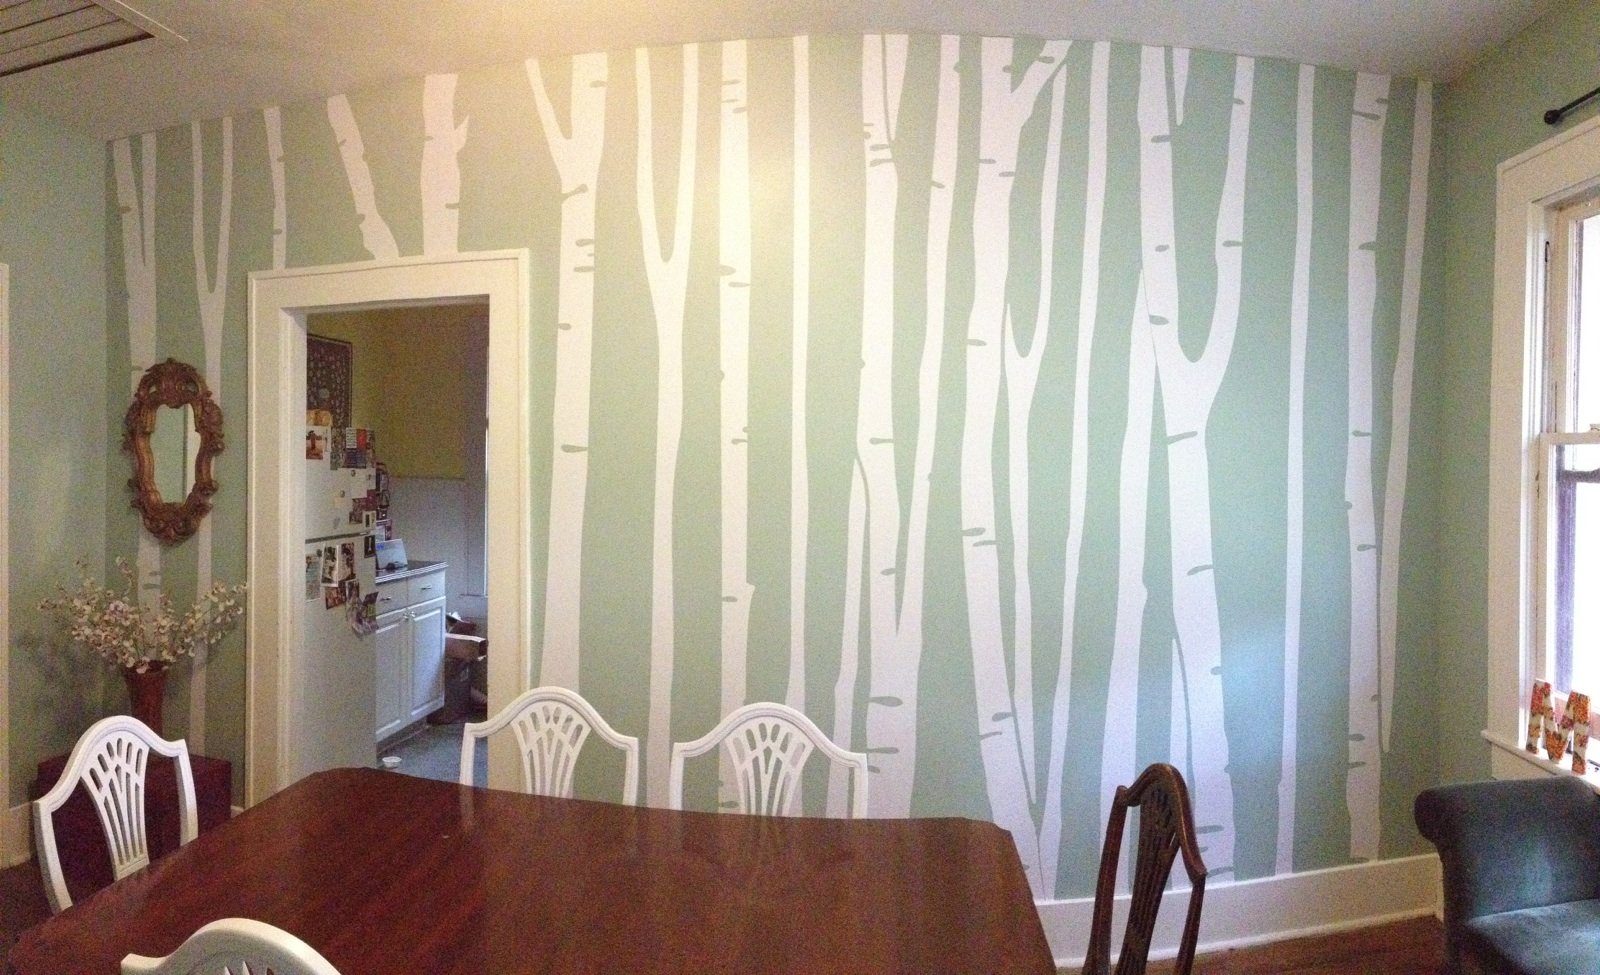 Large Wall Birch Tree Decal Forest Kids Vinyl Sticker Removable (9 Trees) 108'' (9 Feet) Tall #1109